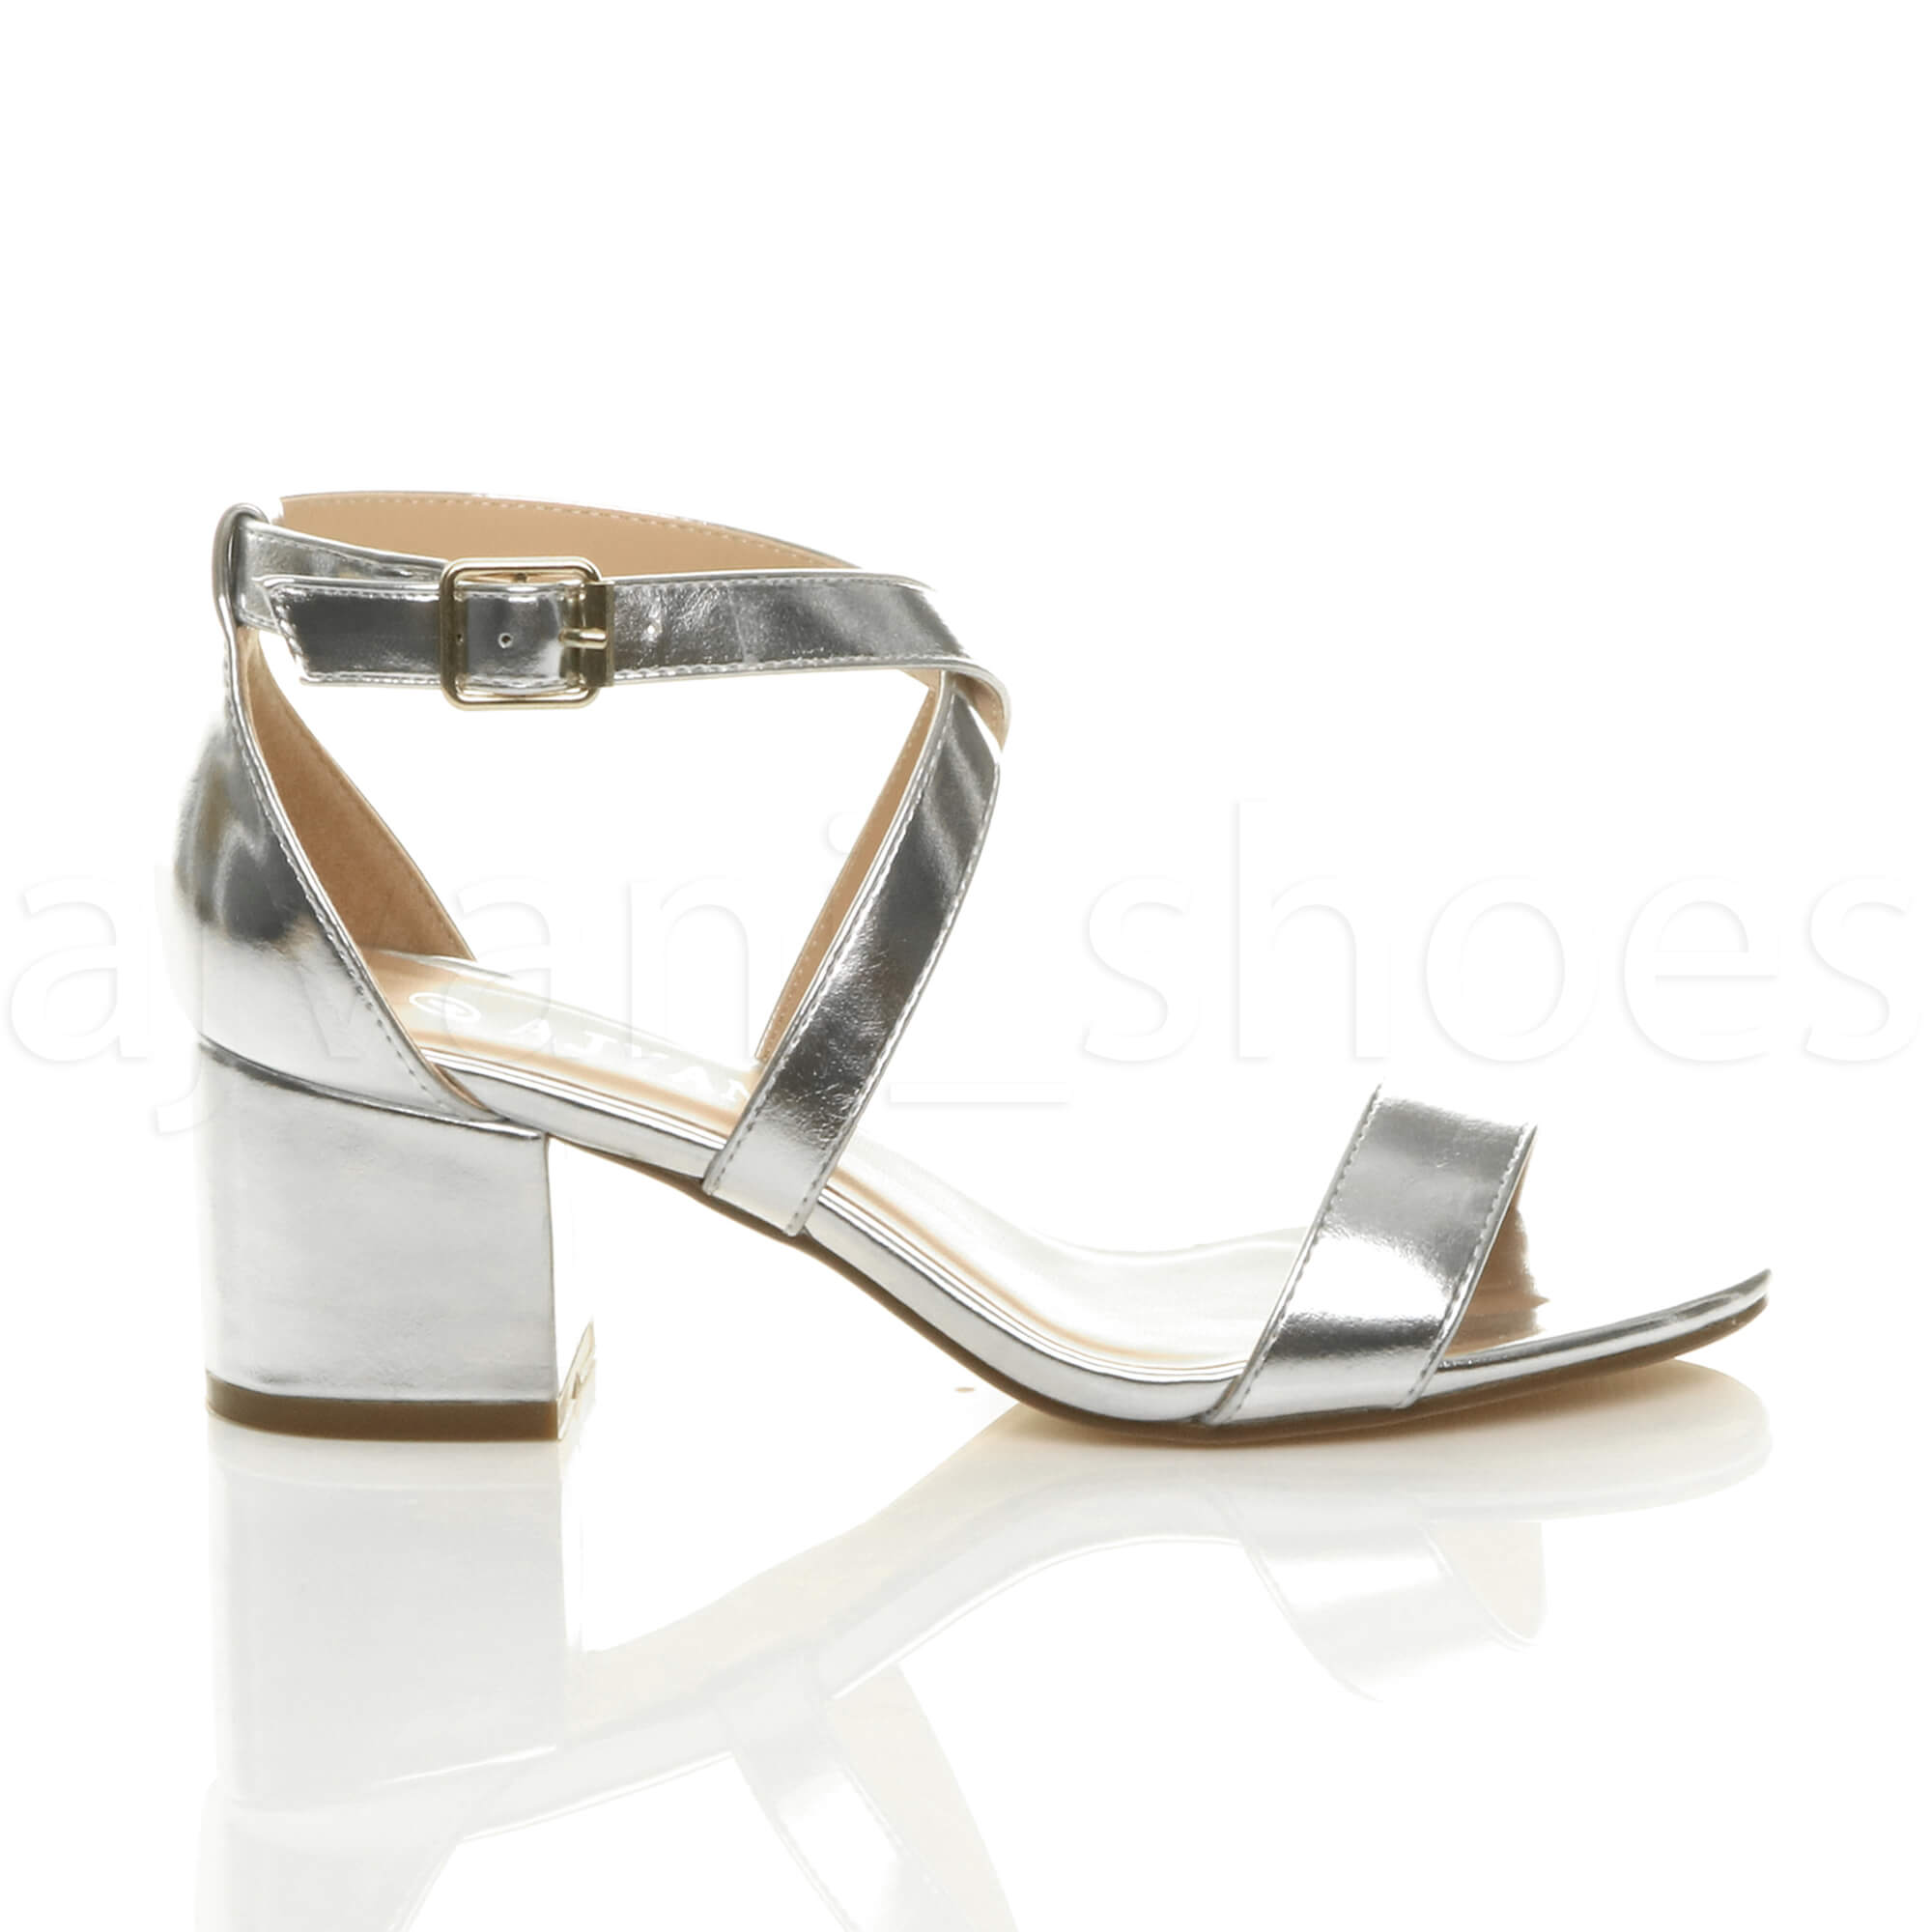 WOMENS-LADIES-MID-LOW-BLOCK-HEEL-CROSS-STRAPS-PARTY-STRAPPY-SANDALS-SHOES-SIZE thumbnail 79